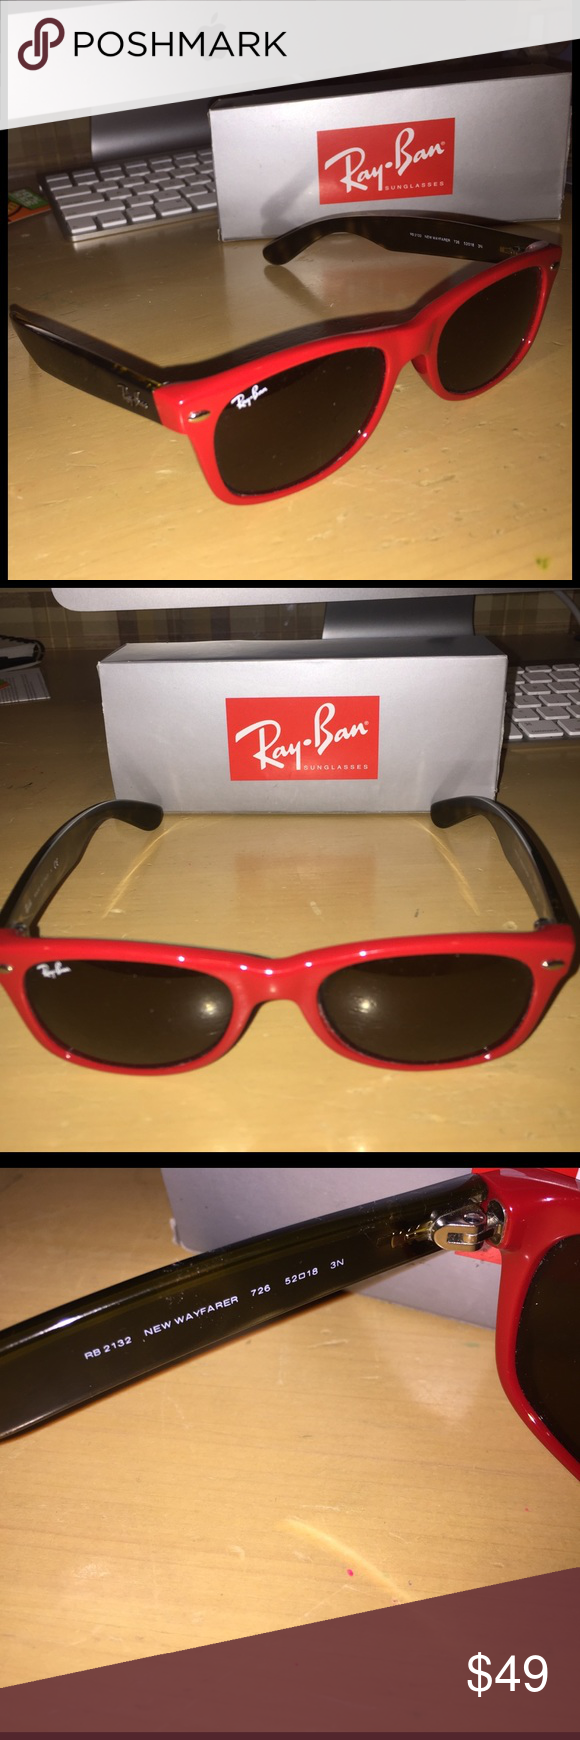 Ray ban sunglasses for couple - Ray Ban Wayfarer Rb 2132 Red Brown 52mm Owned These Ray Ban Sunglasses For A